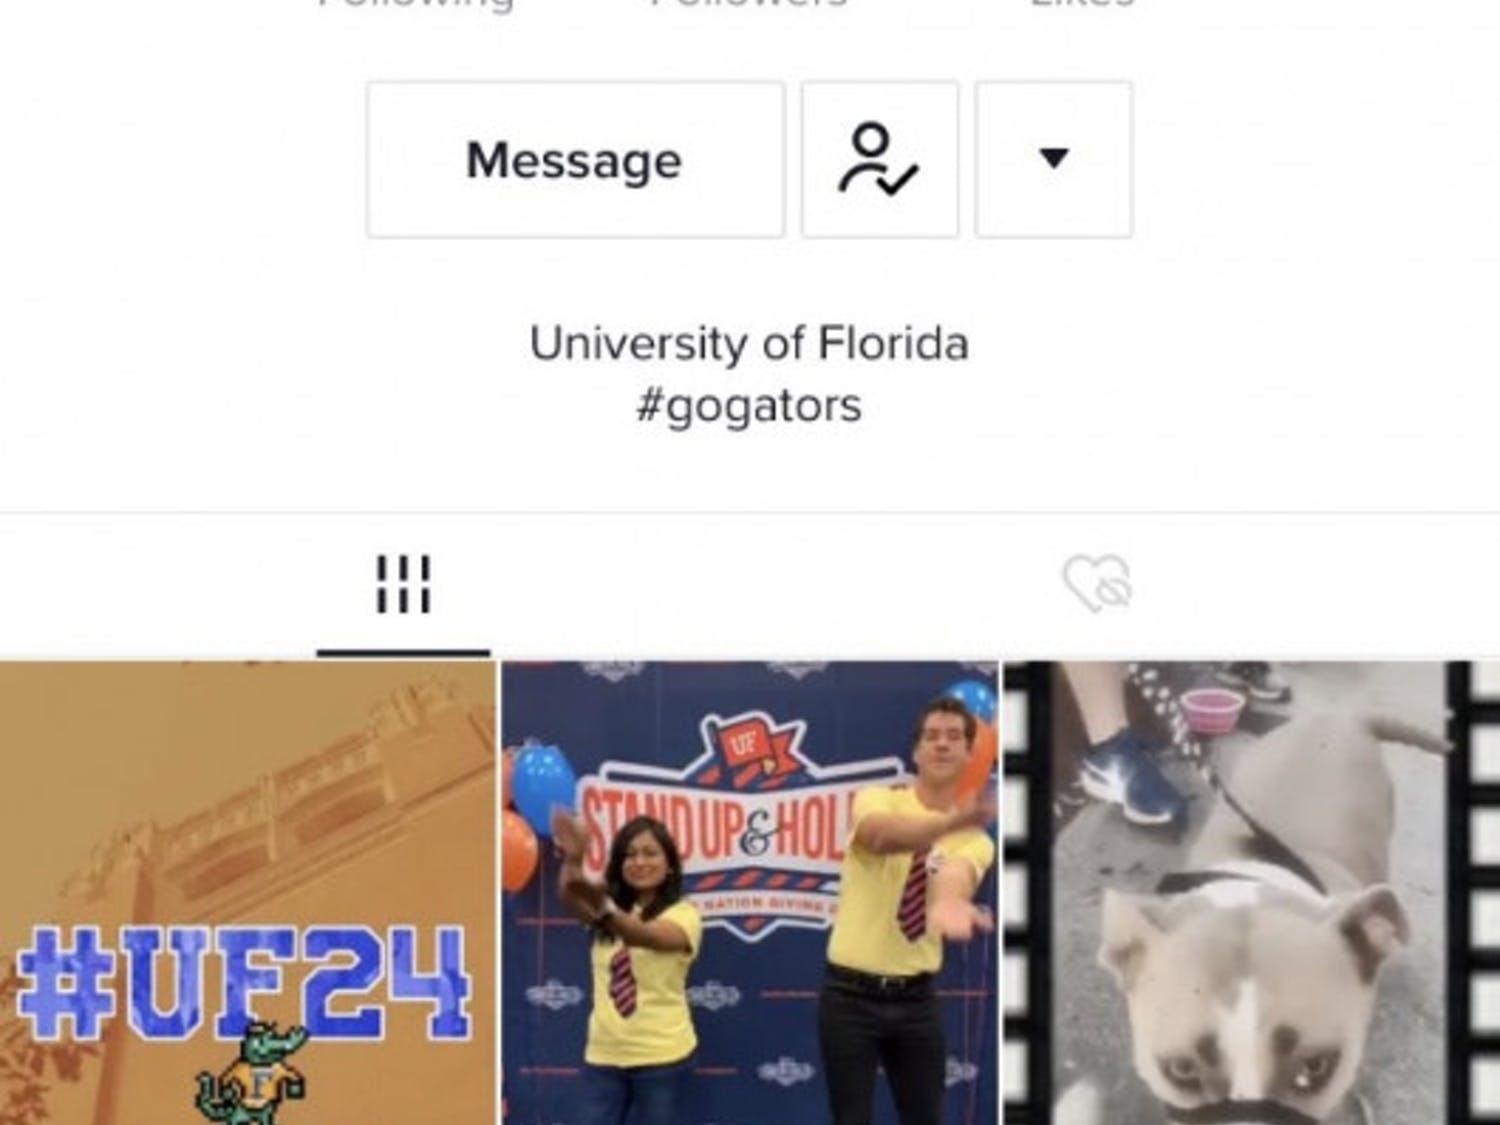 The official UF account combines Gator content with popular TikTok trends.